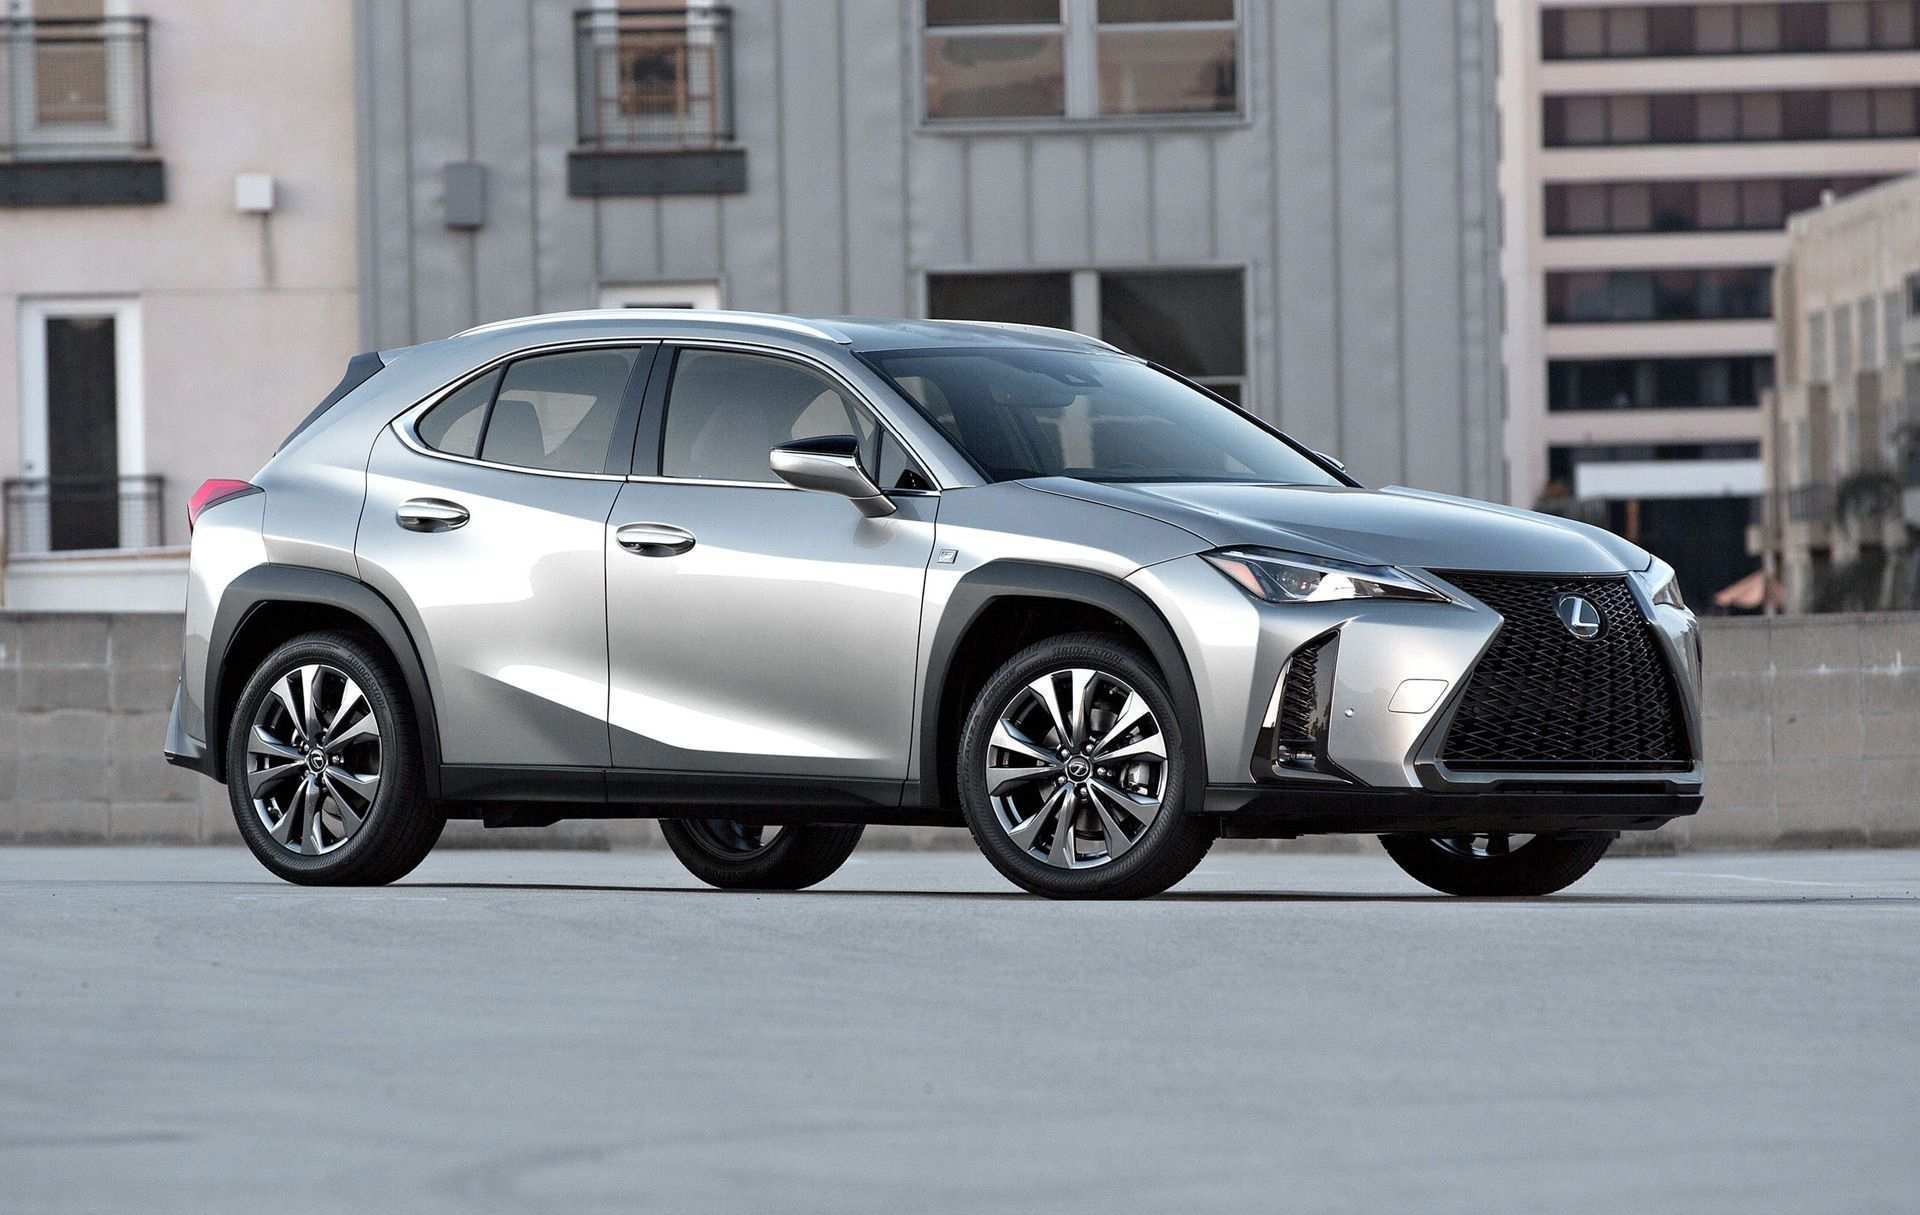 42 The 2020 Lexus Ux Exterior Pictures for 2020 Lexus Ux Exterior